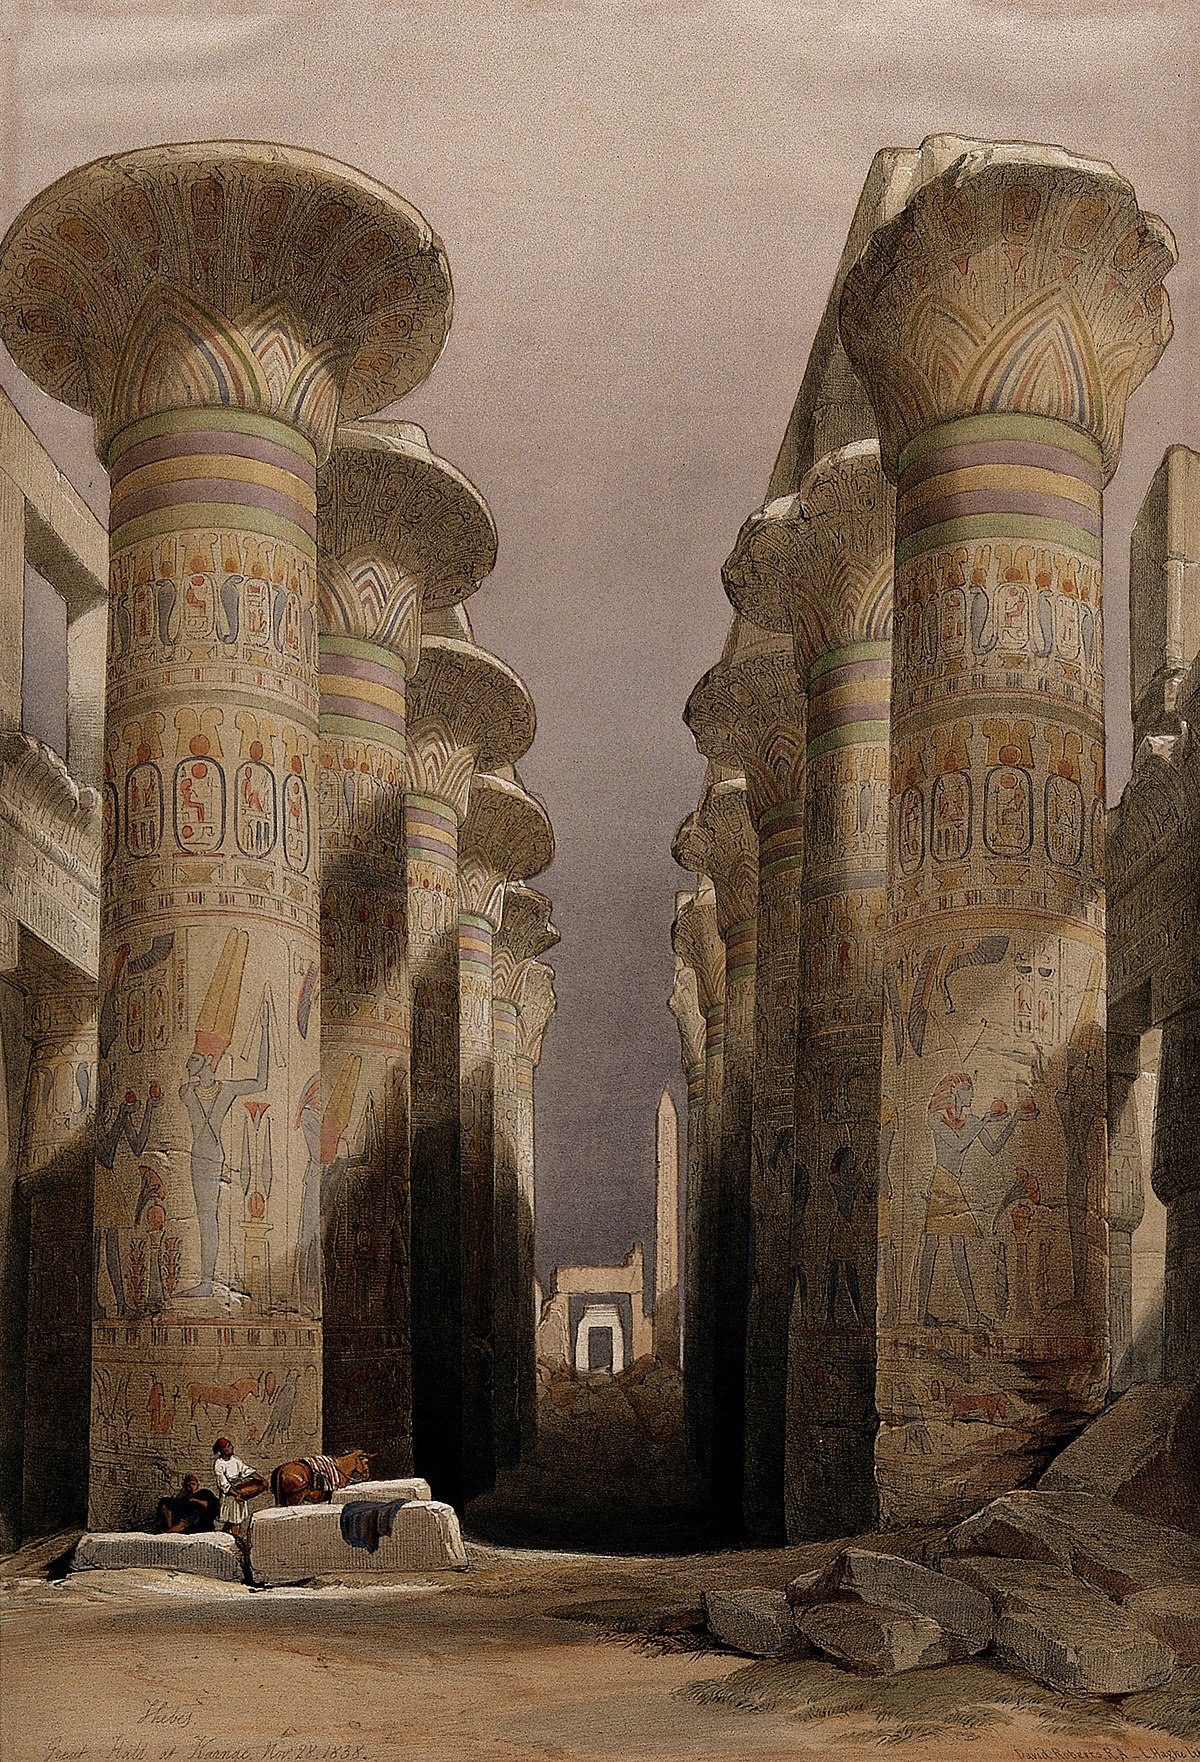 Thebes, Egypt - Wikipedia